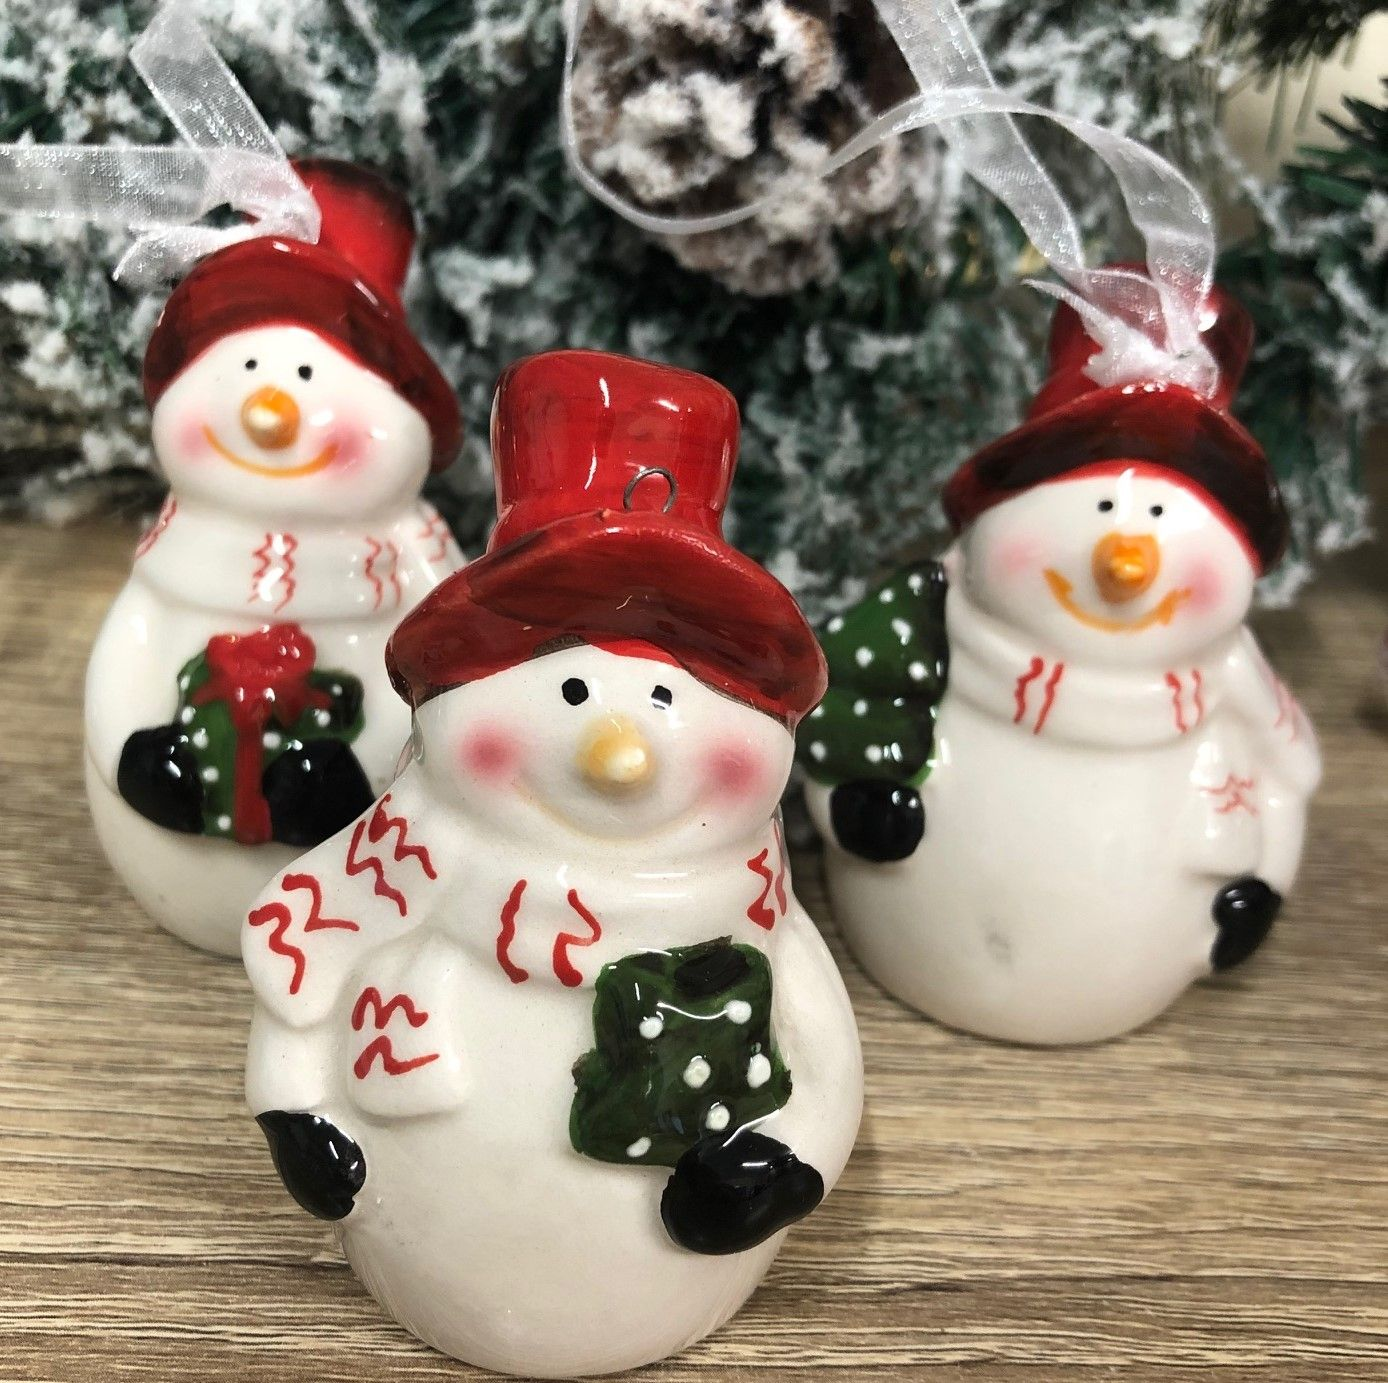 Ceramic Christmas Tree Decorations.Snowman Hanging Ceramic Christmas Tree Decorations Set Of 3